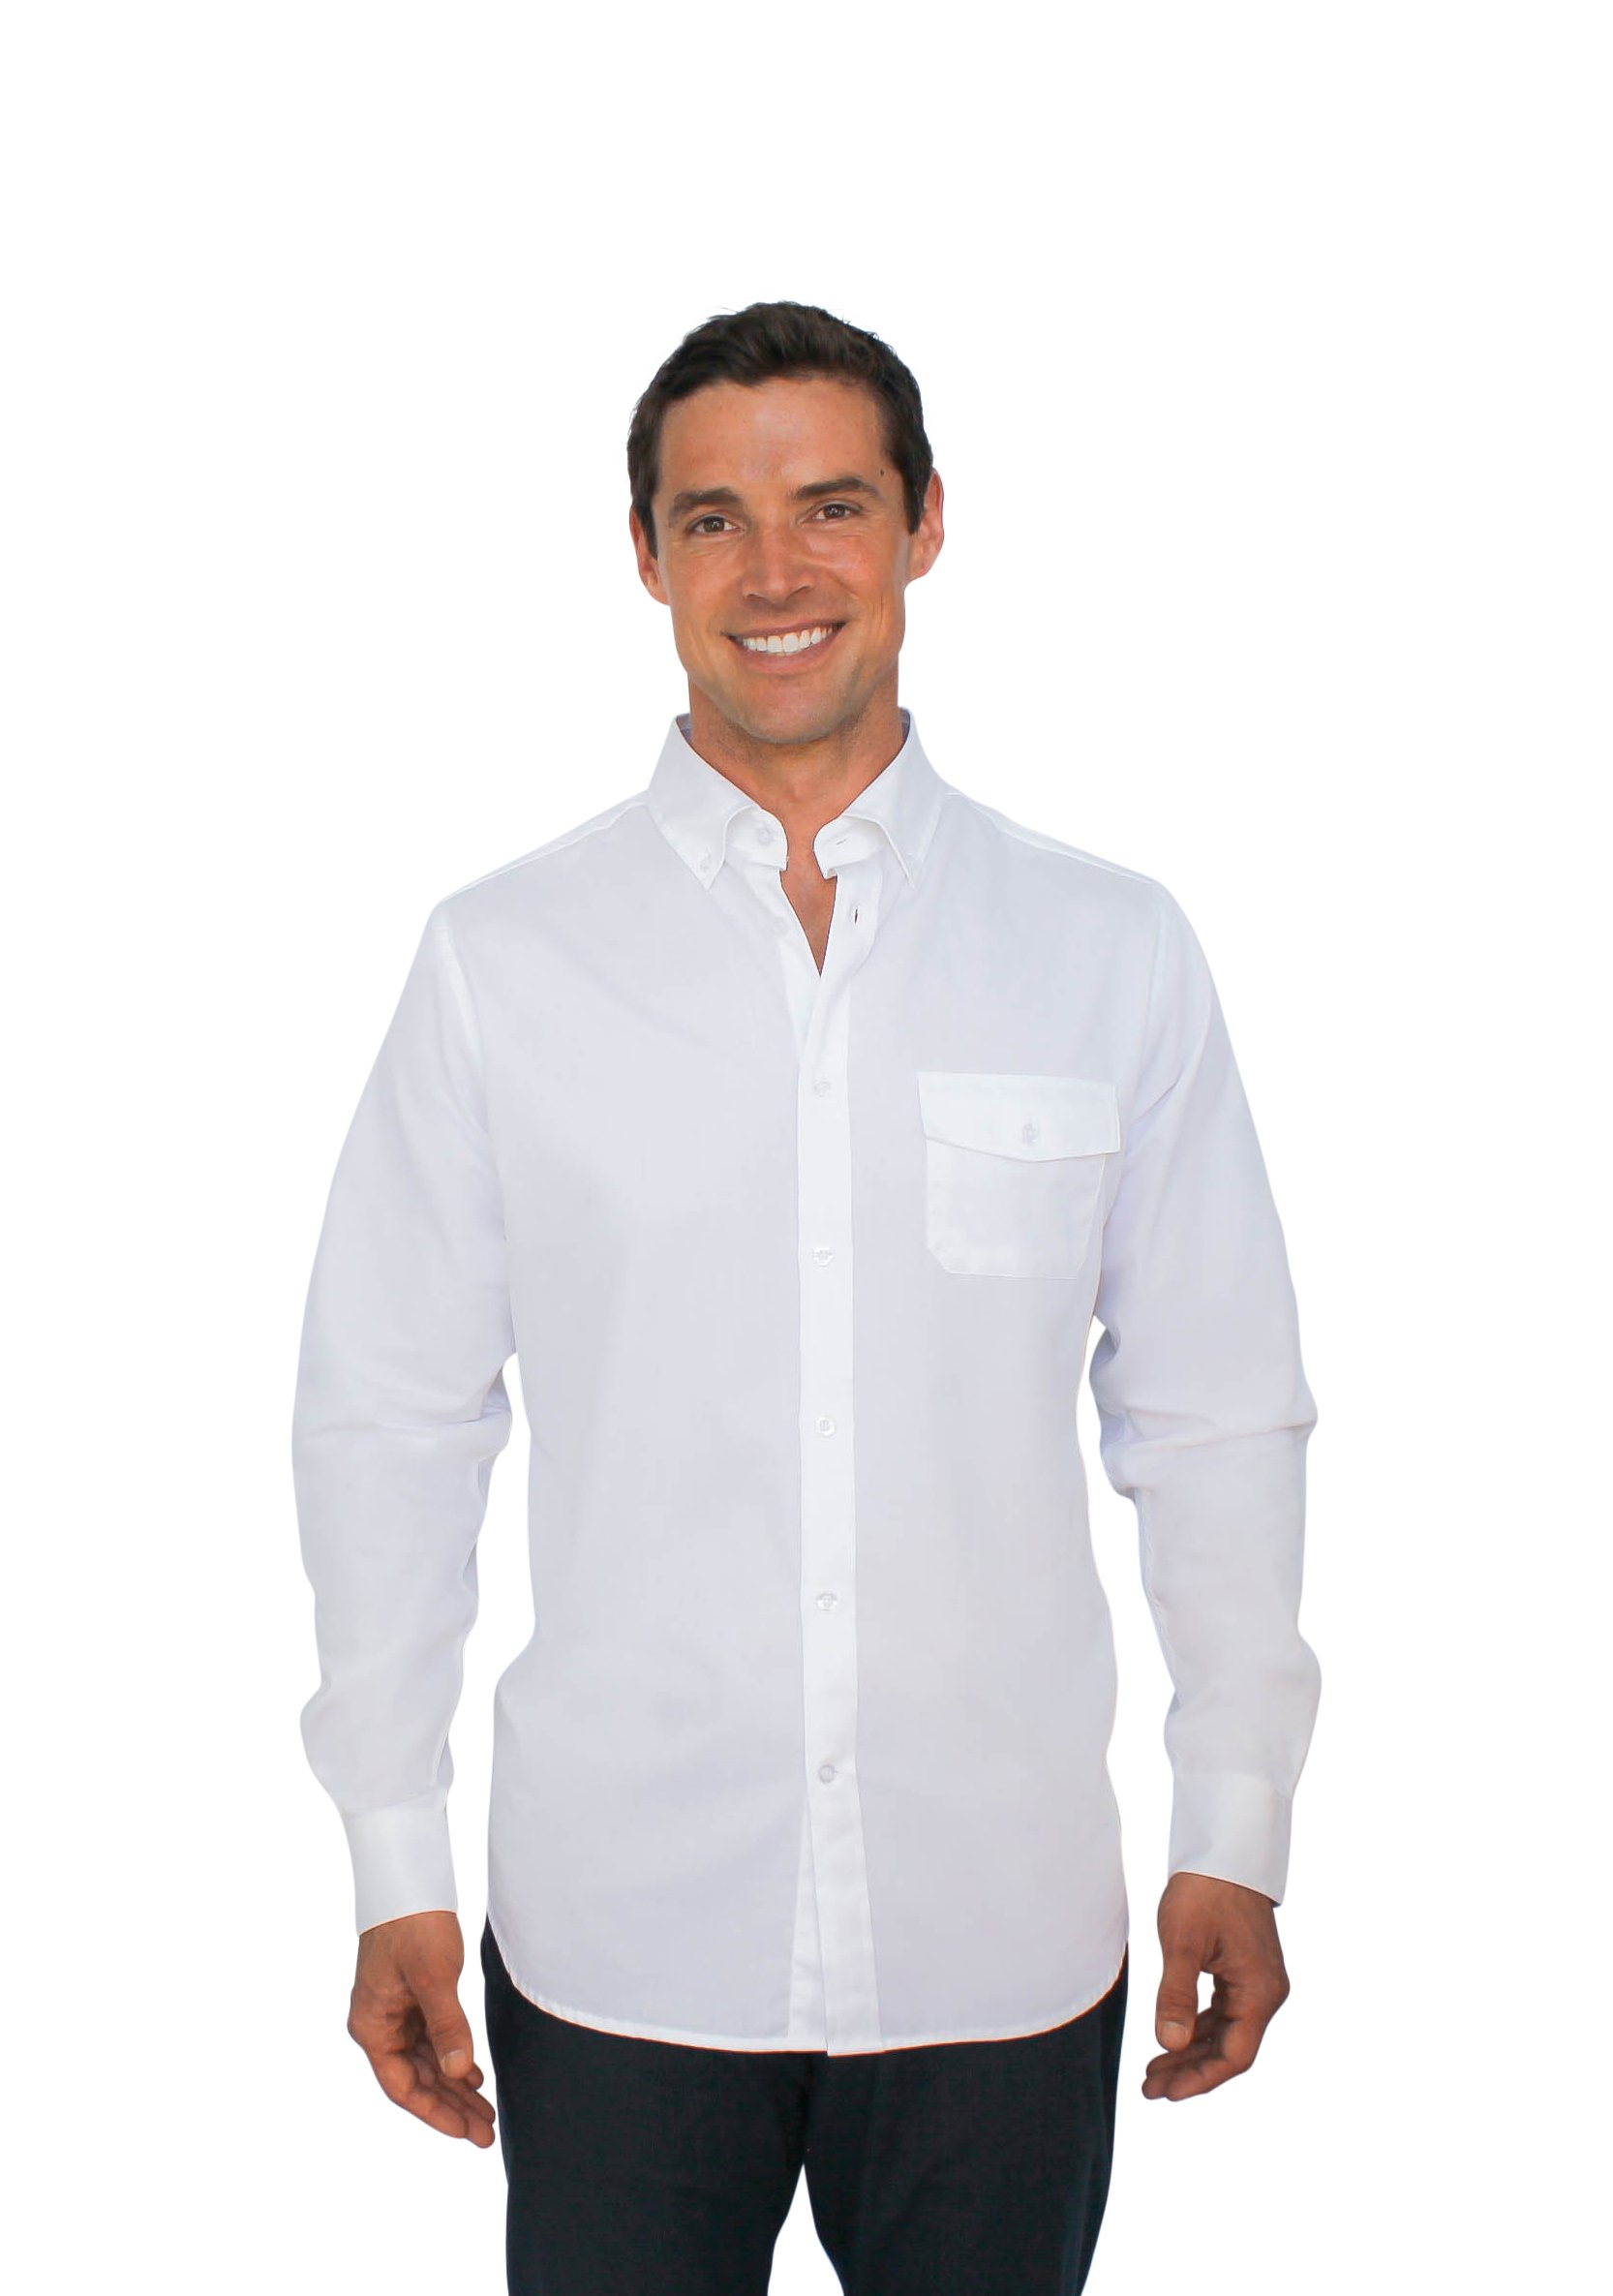 The BSE - Stainproof, Waterproof, Sweat-wicking Men's Button Down (Medium, White) by Clickbait Clothing